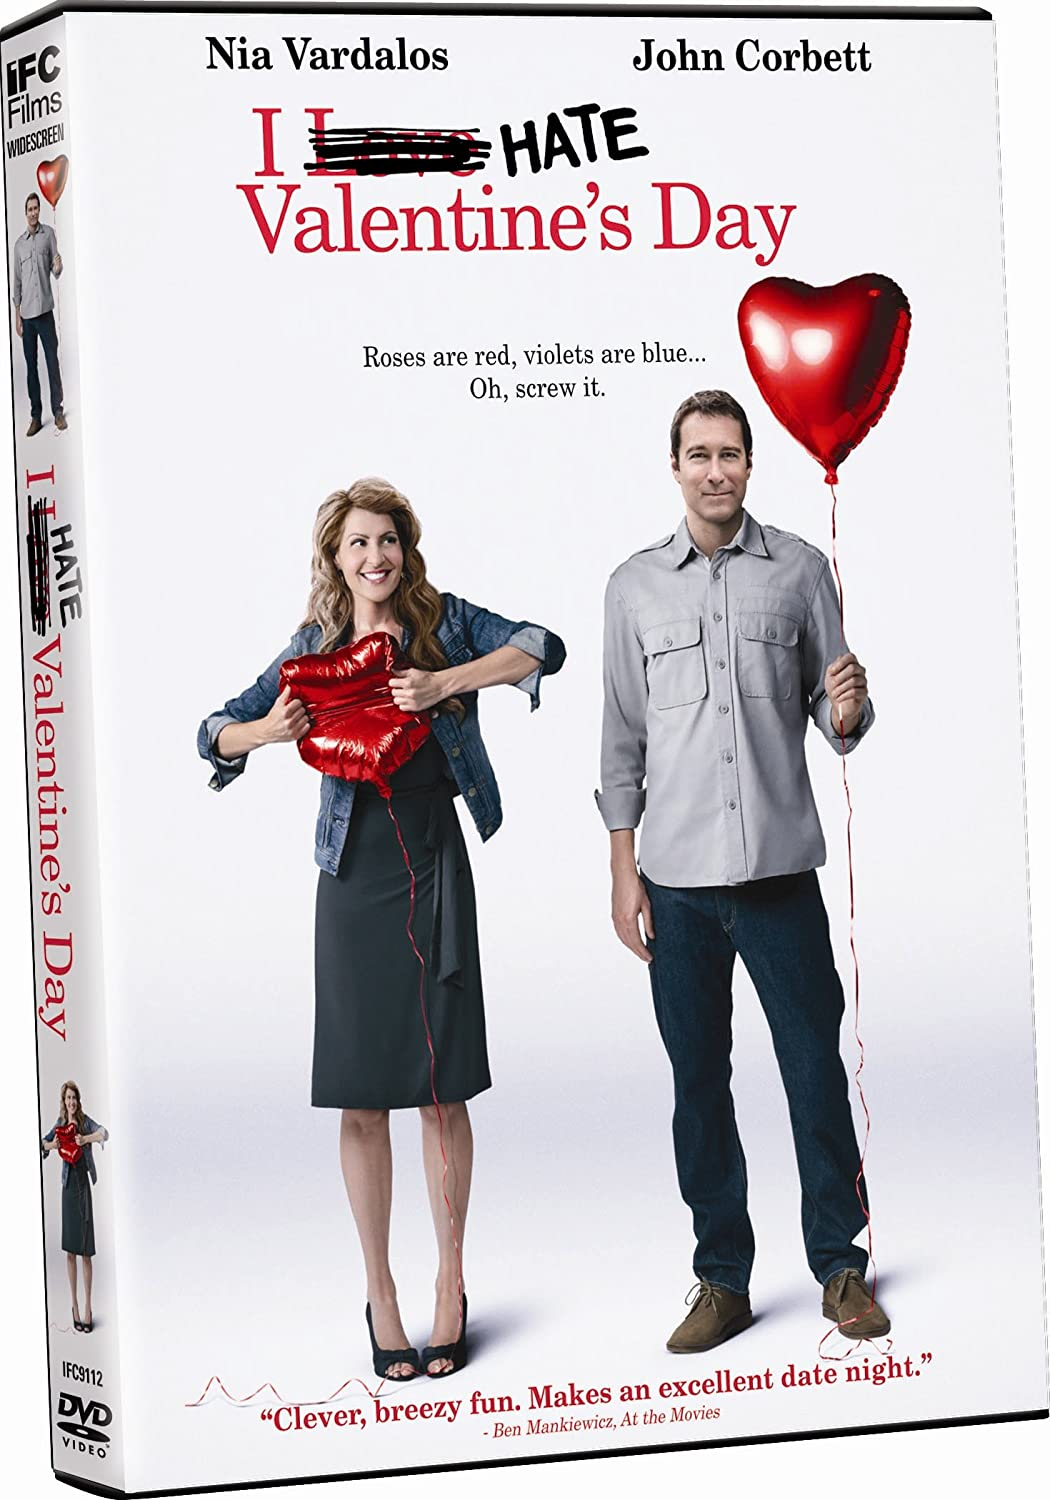 Amazon.com: I Hate Valentineu0027s Day: Nia Vardalos, John Corbett: Movies U0026 TV